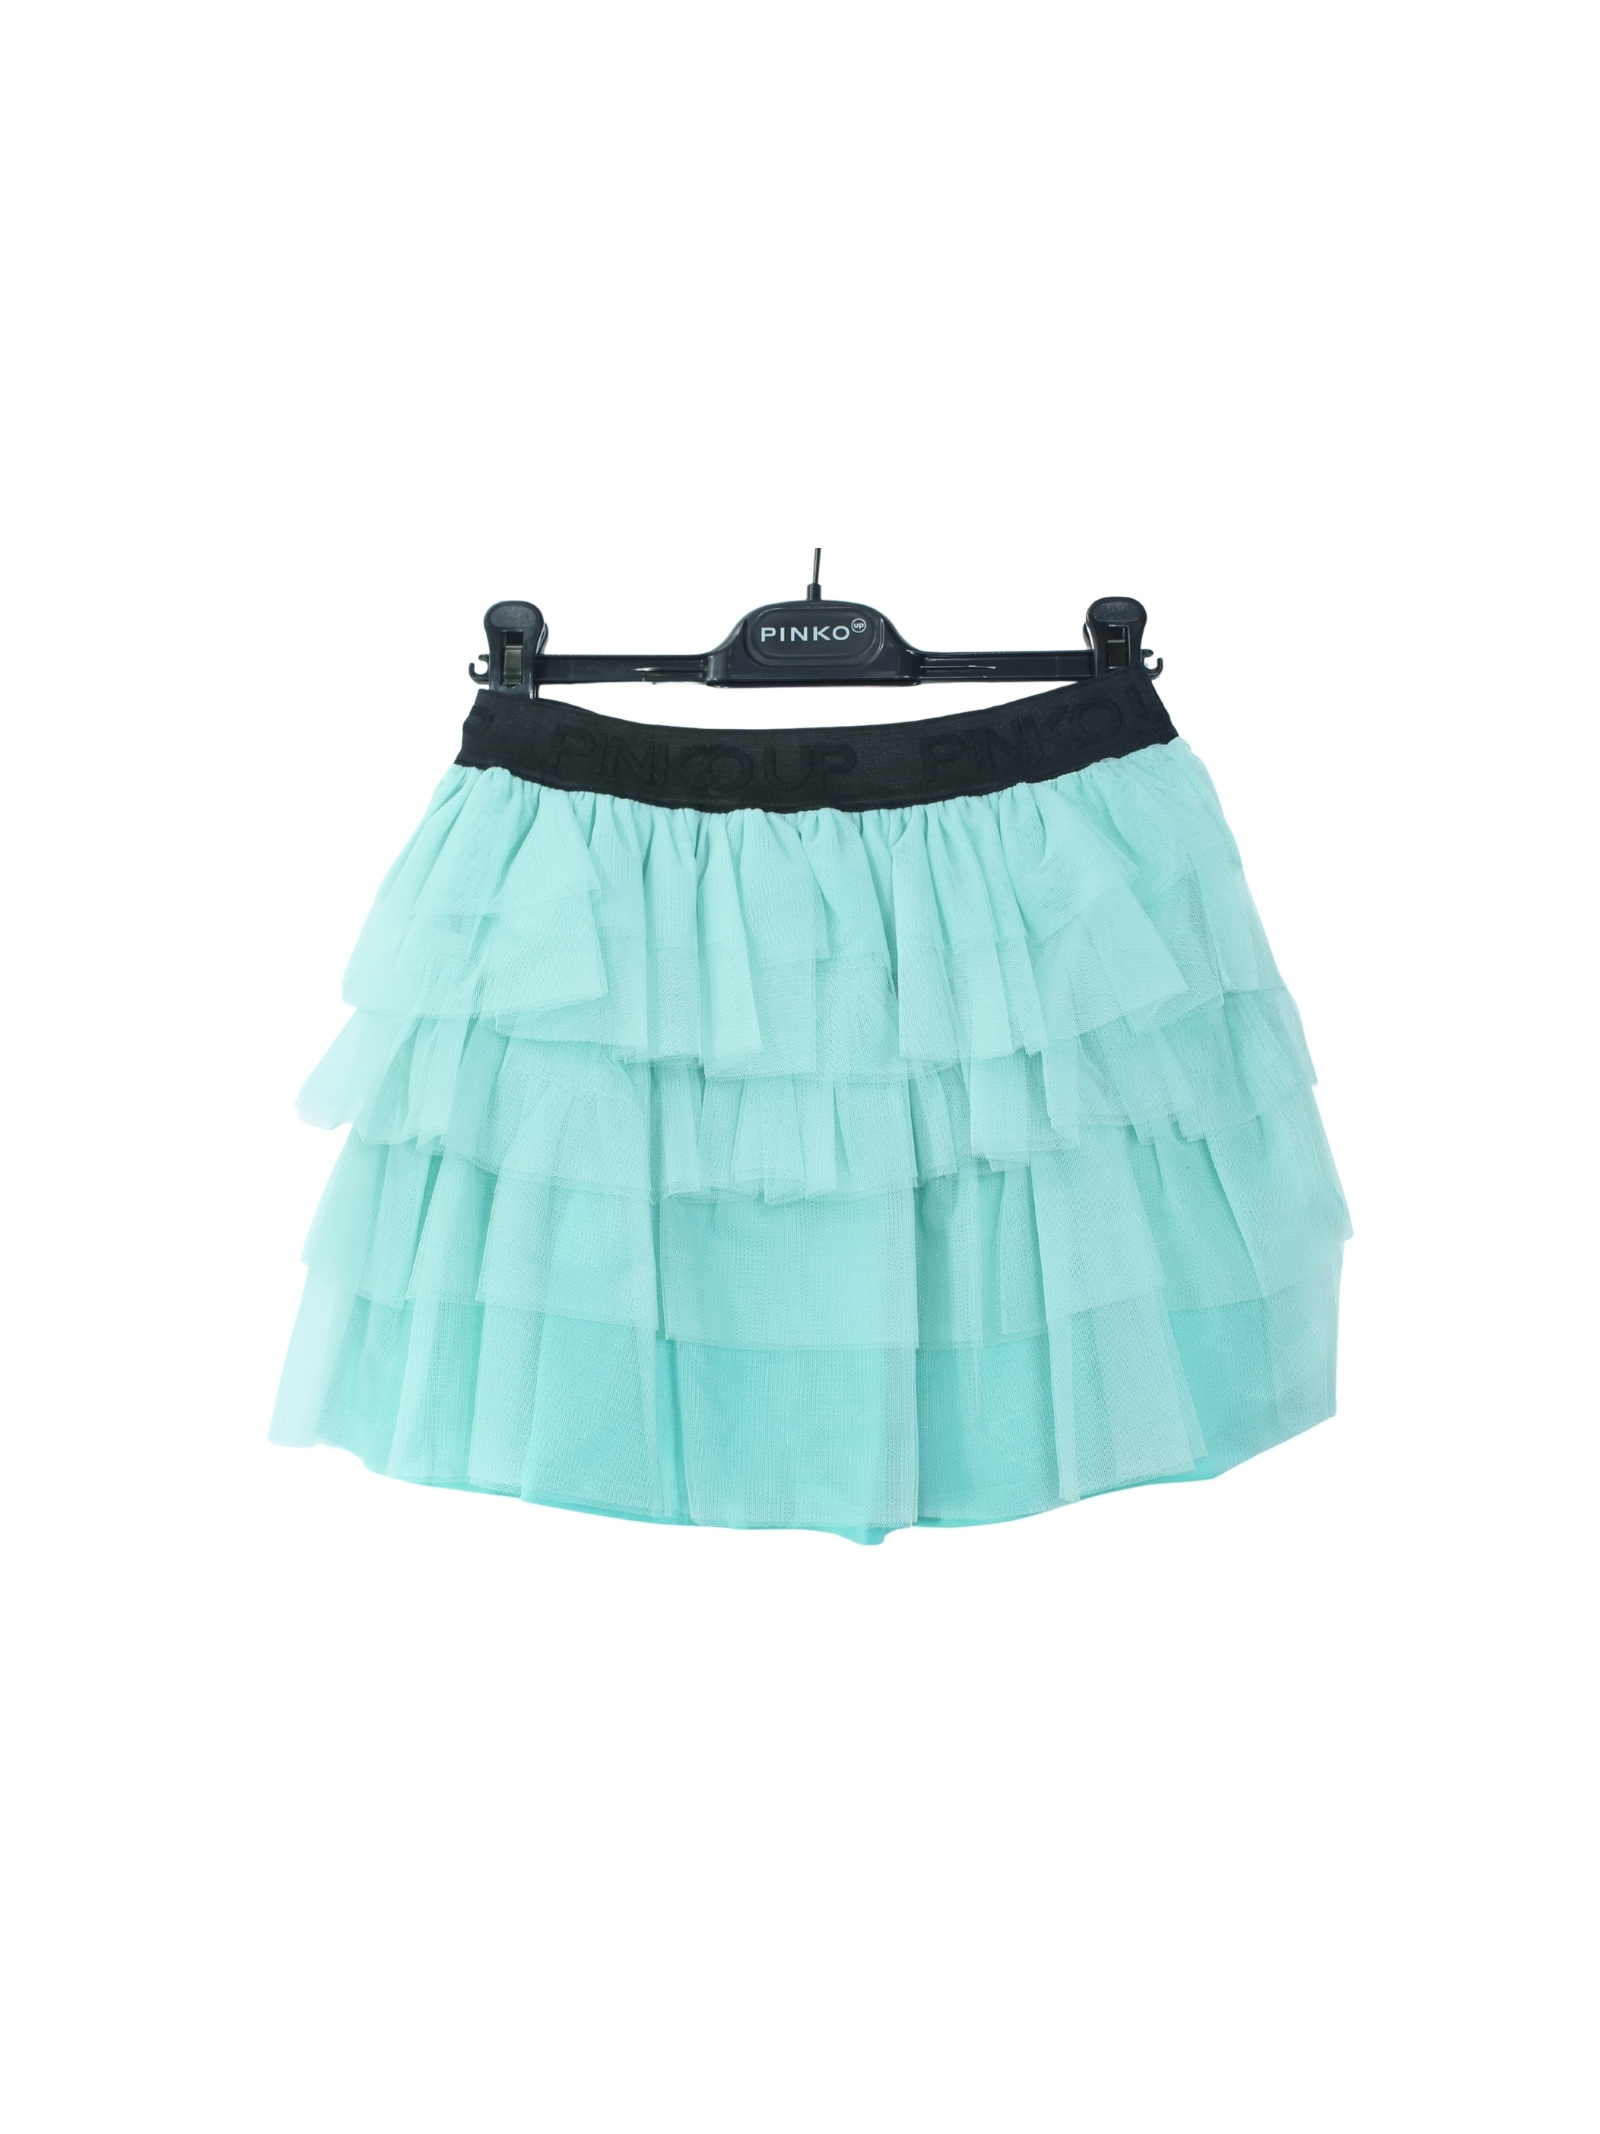 Gonna Bambina Pinko Tulle PINKO UP | Gonne | 027232114